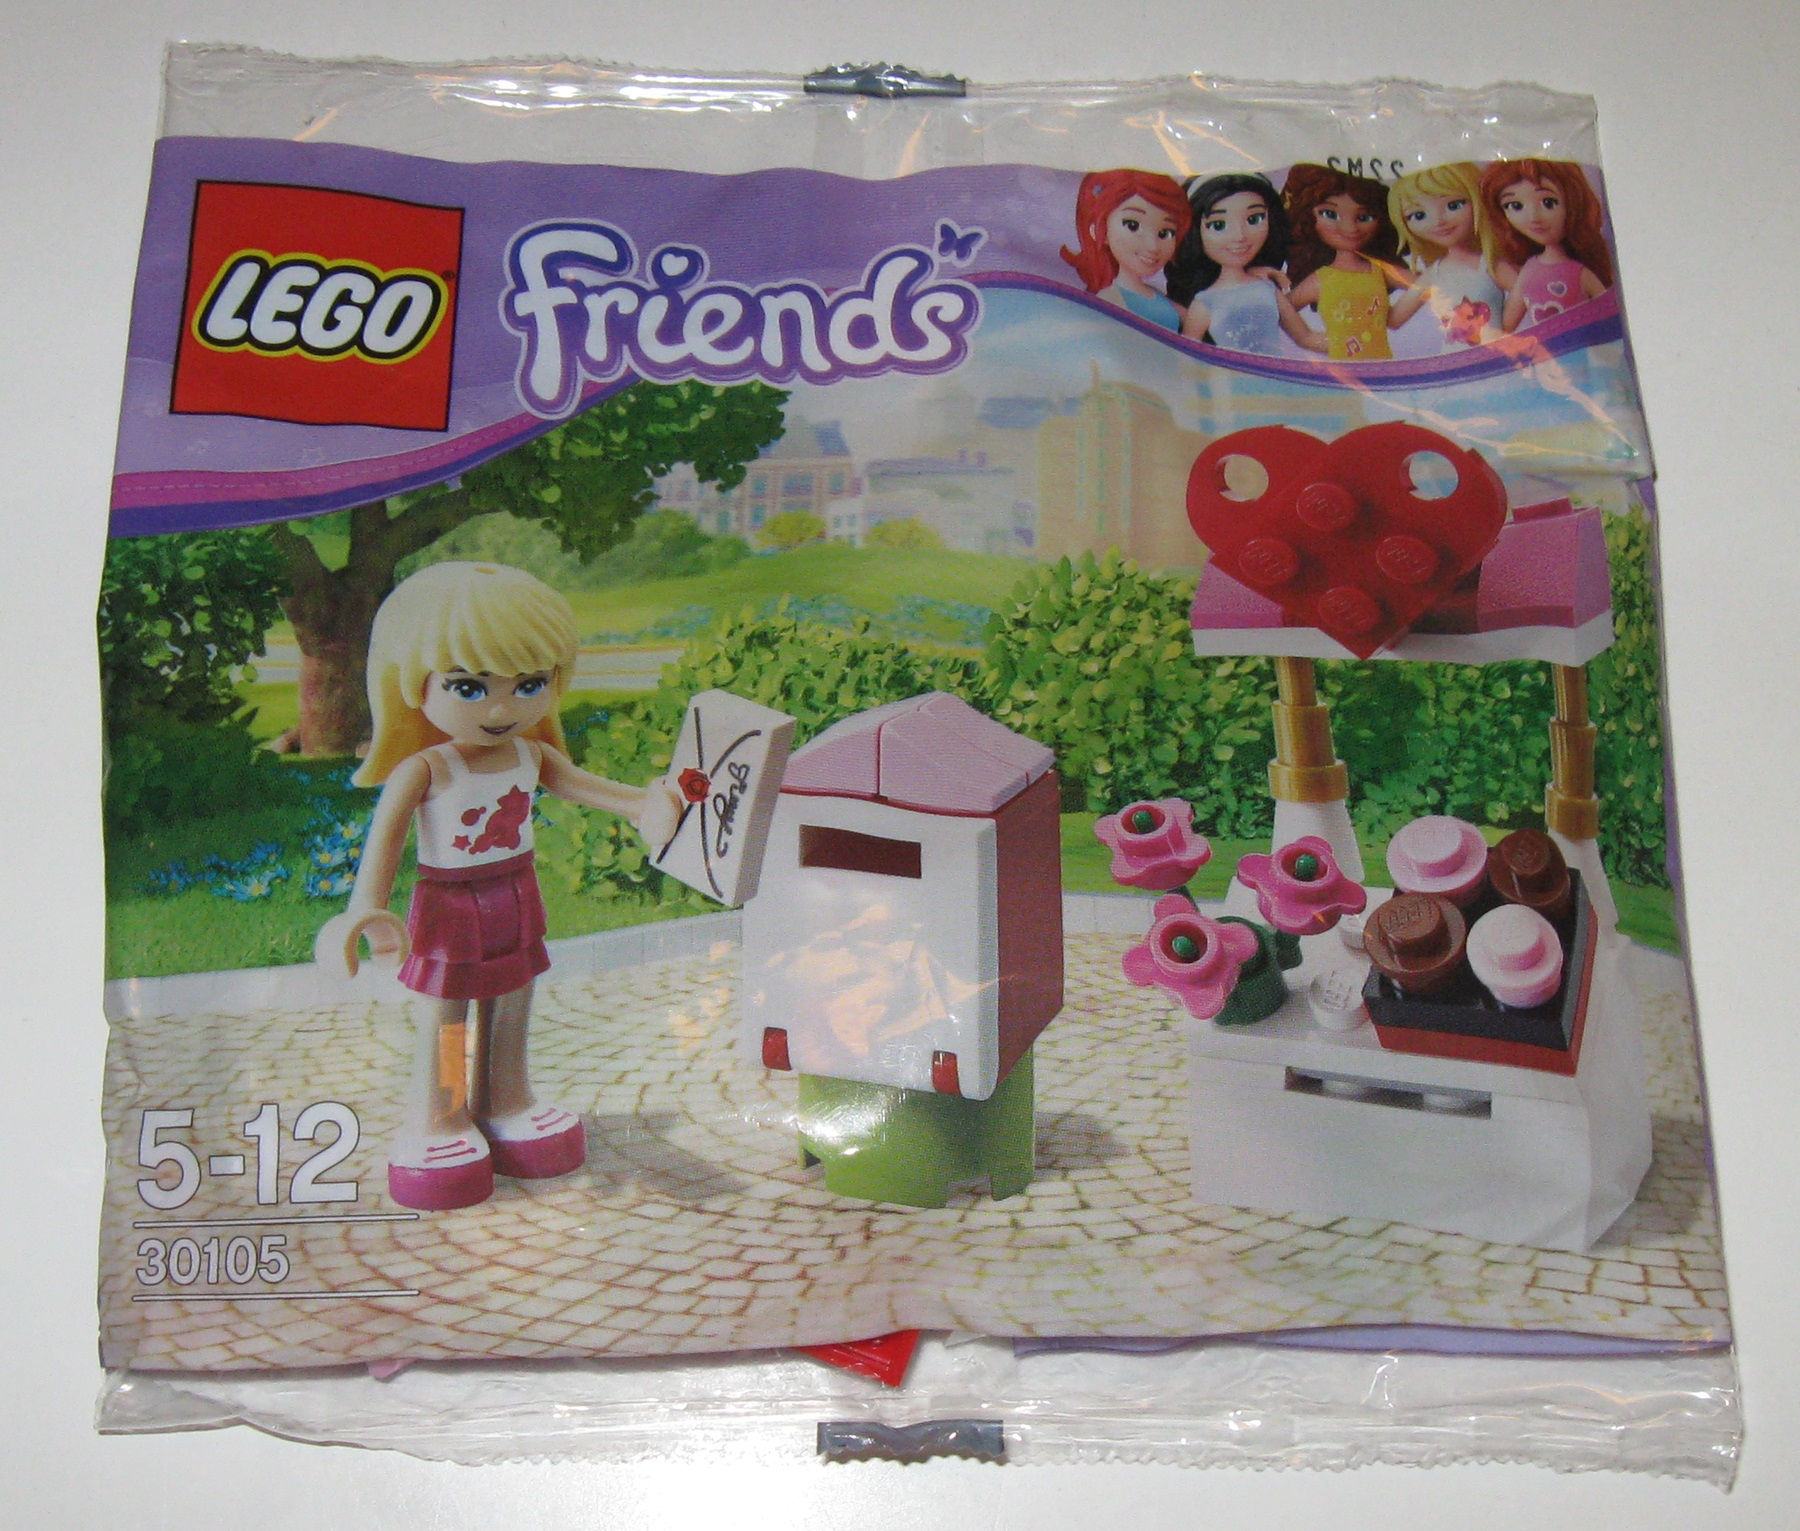 0030 Lego Friends 30105